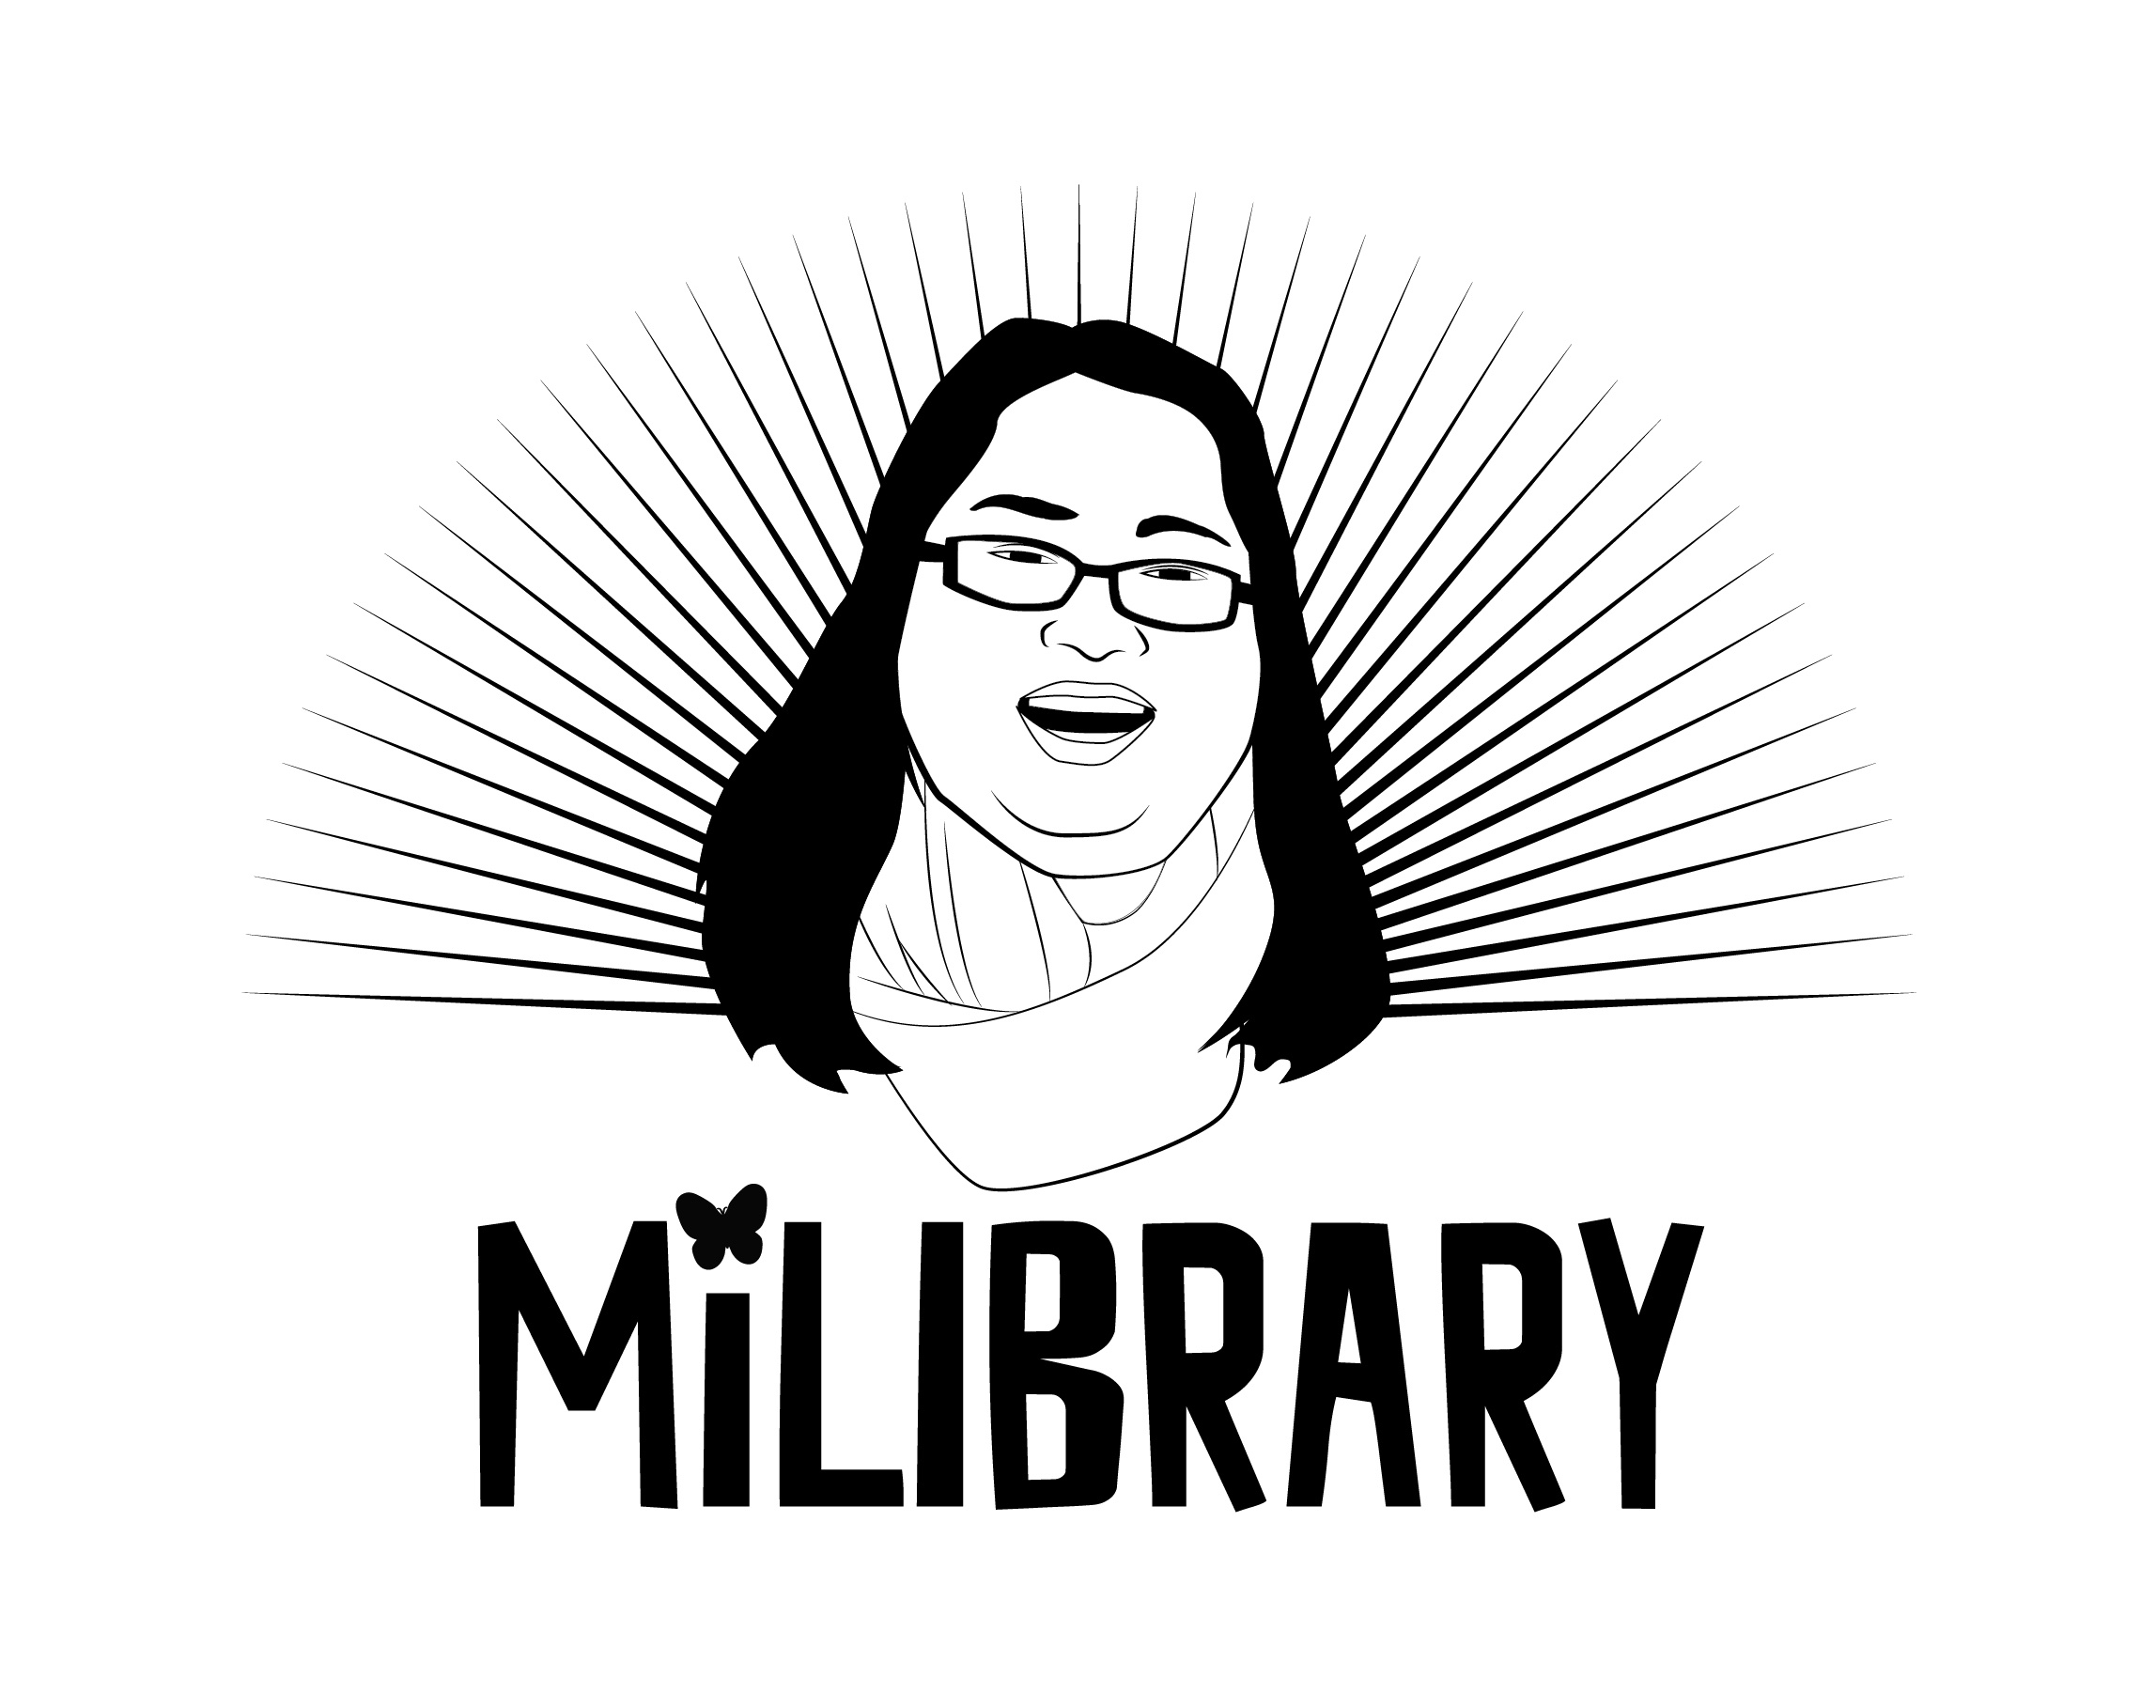 MiLibrary image with face of woman in glasses and smile.